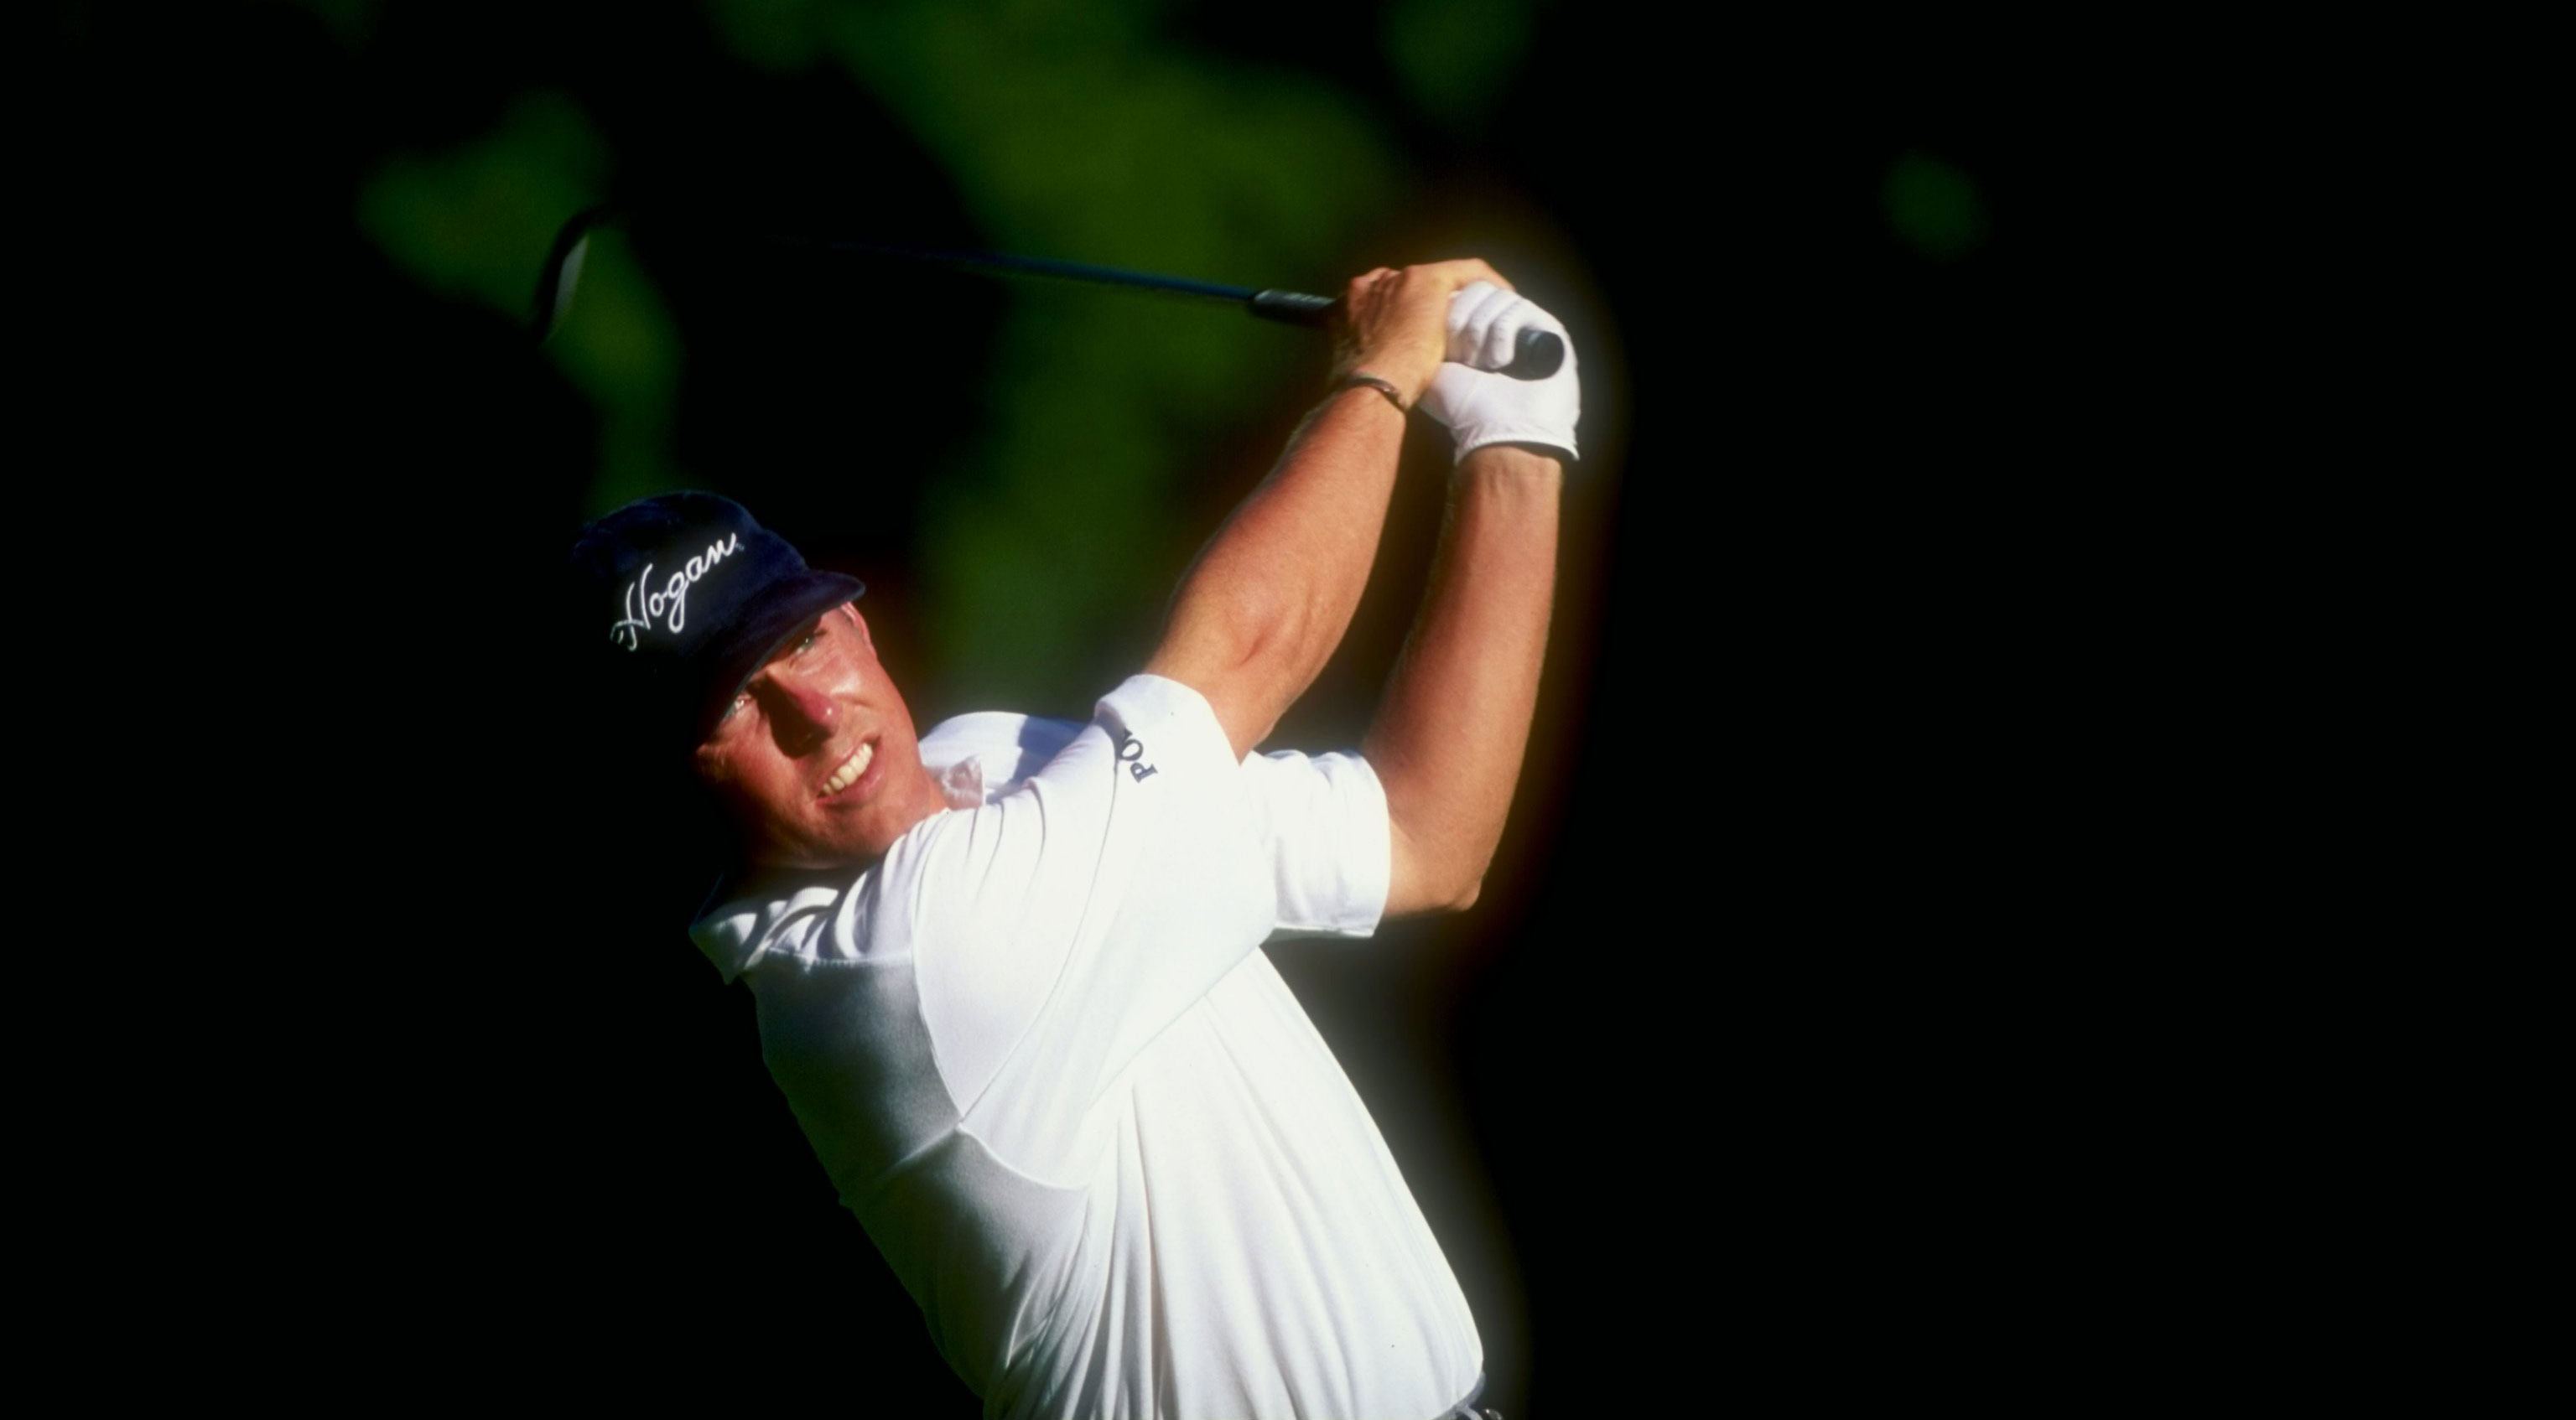 justin leonard and len mattiace produced a historic players in 1998